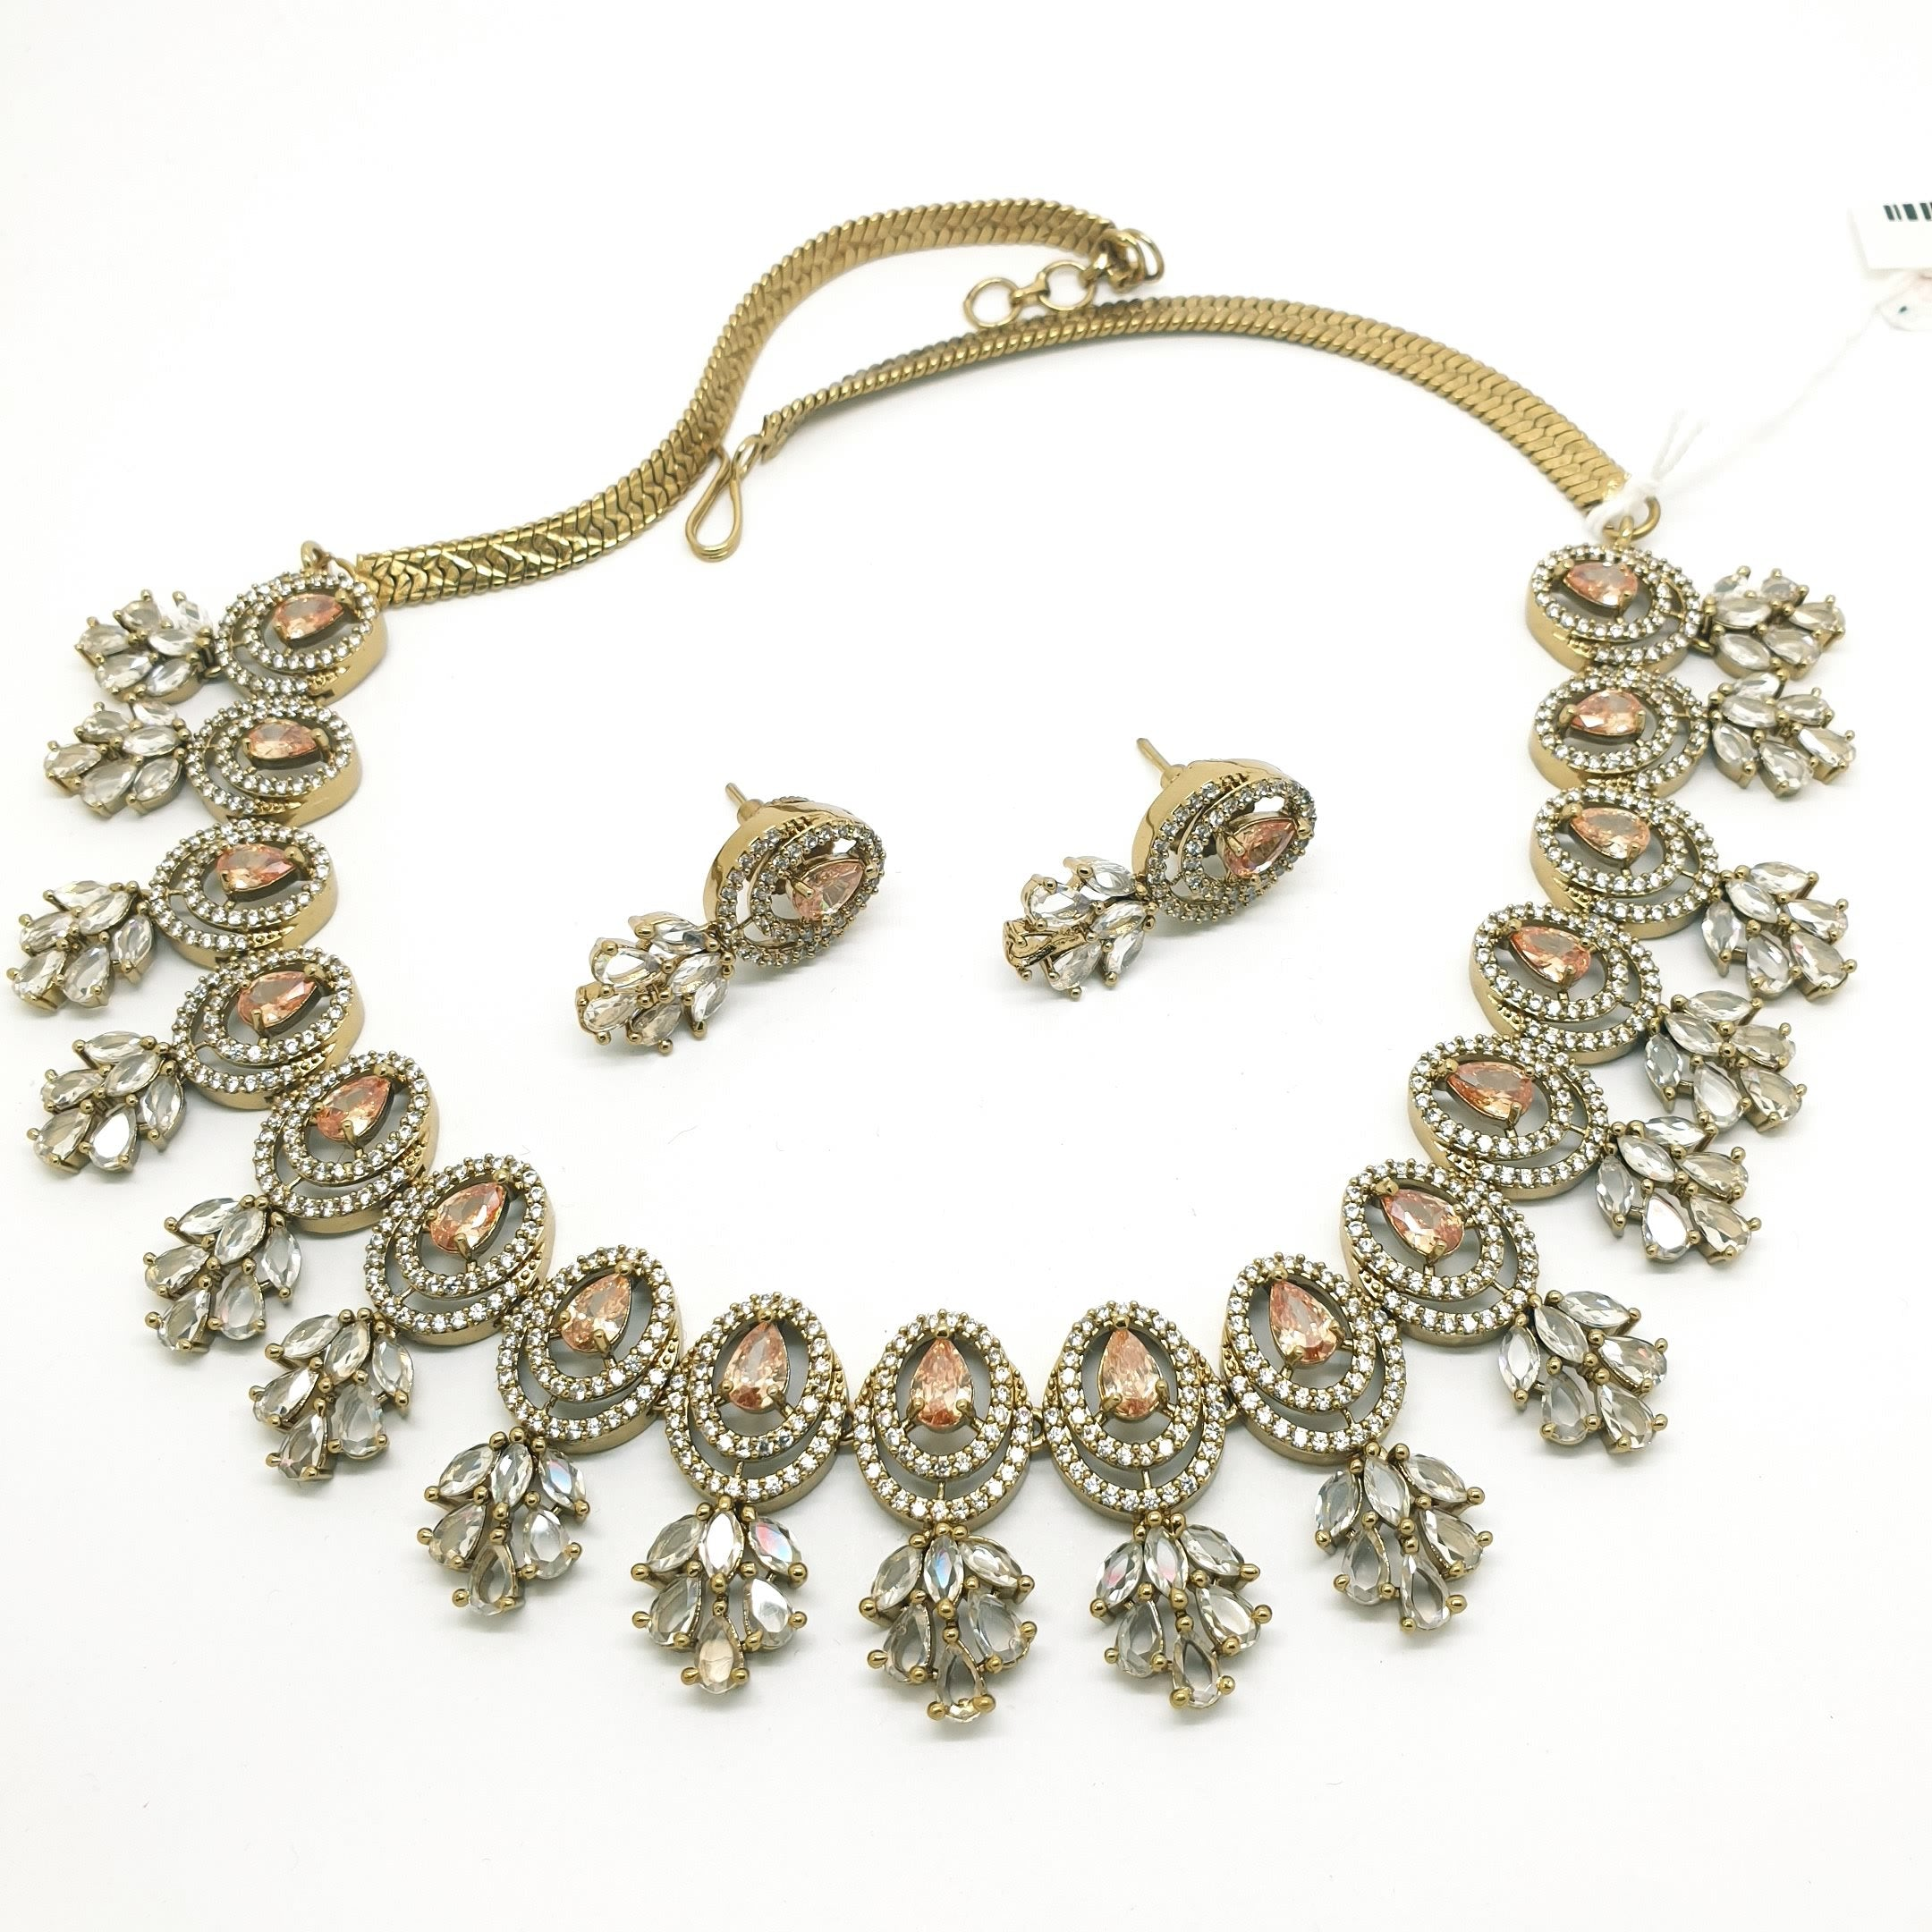 Ladies Necklace with Earrings set - Bollywood - Weddings - MMJ555 TV1119